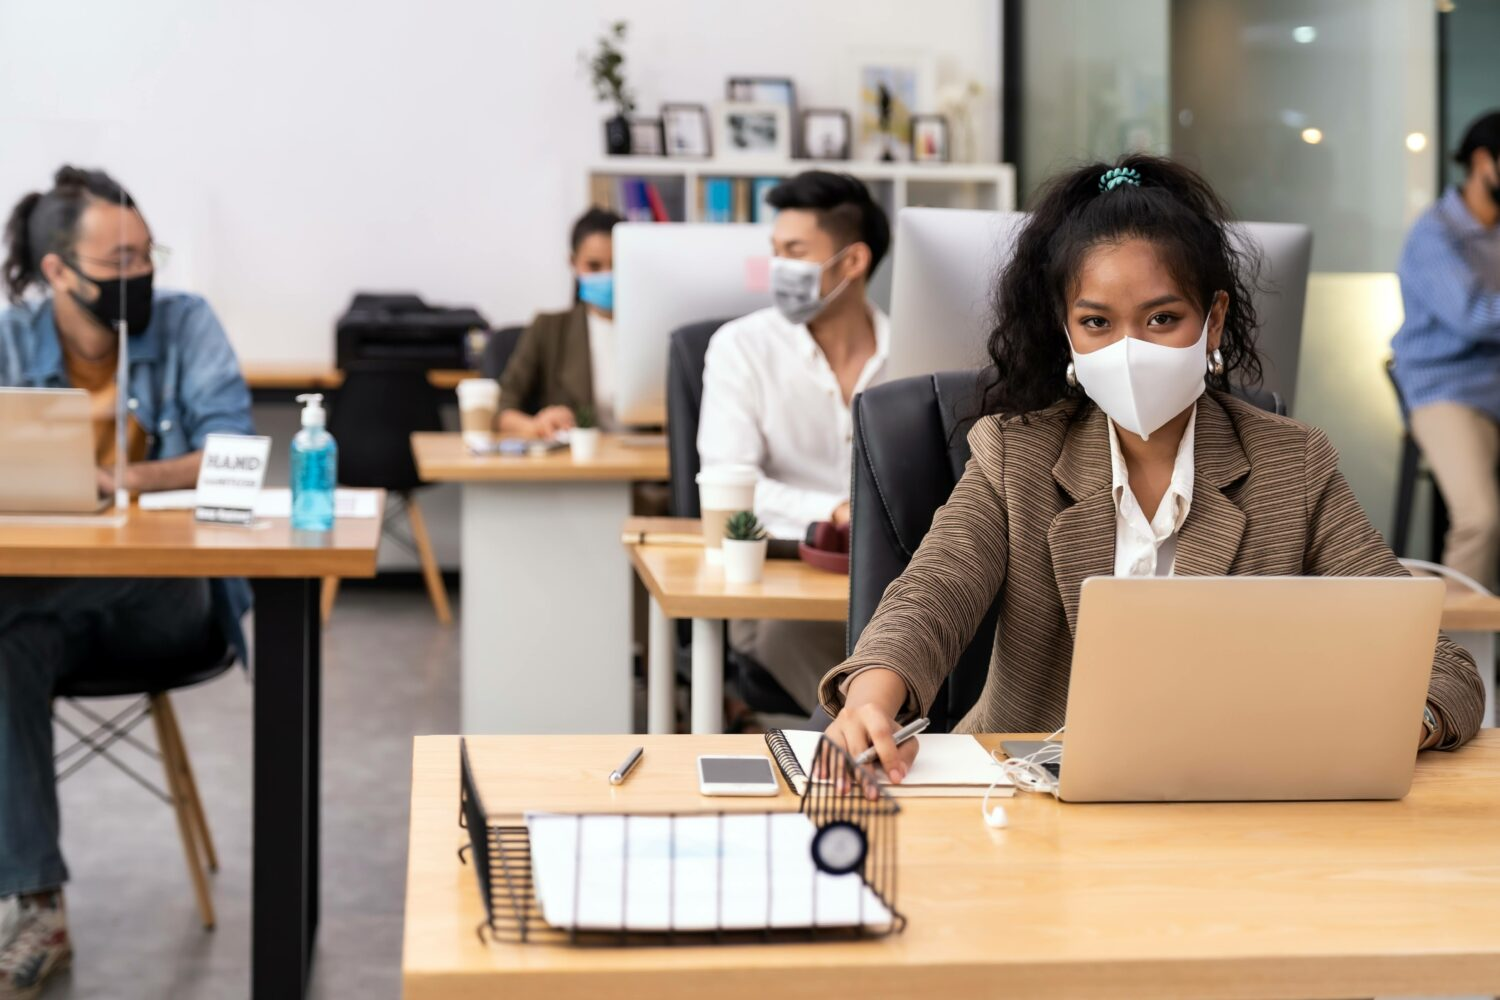 team members working distanced and masked in an office at laptops